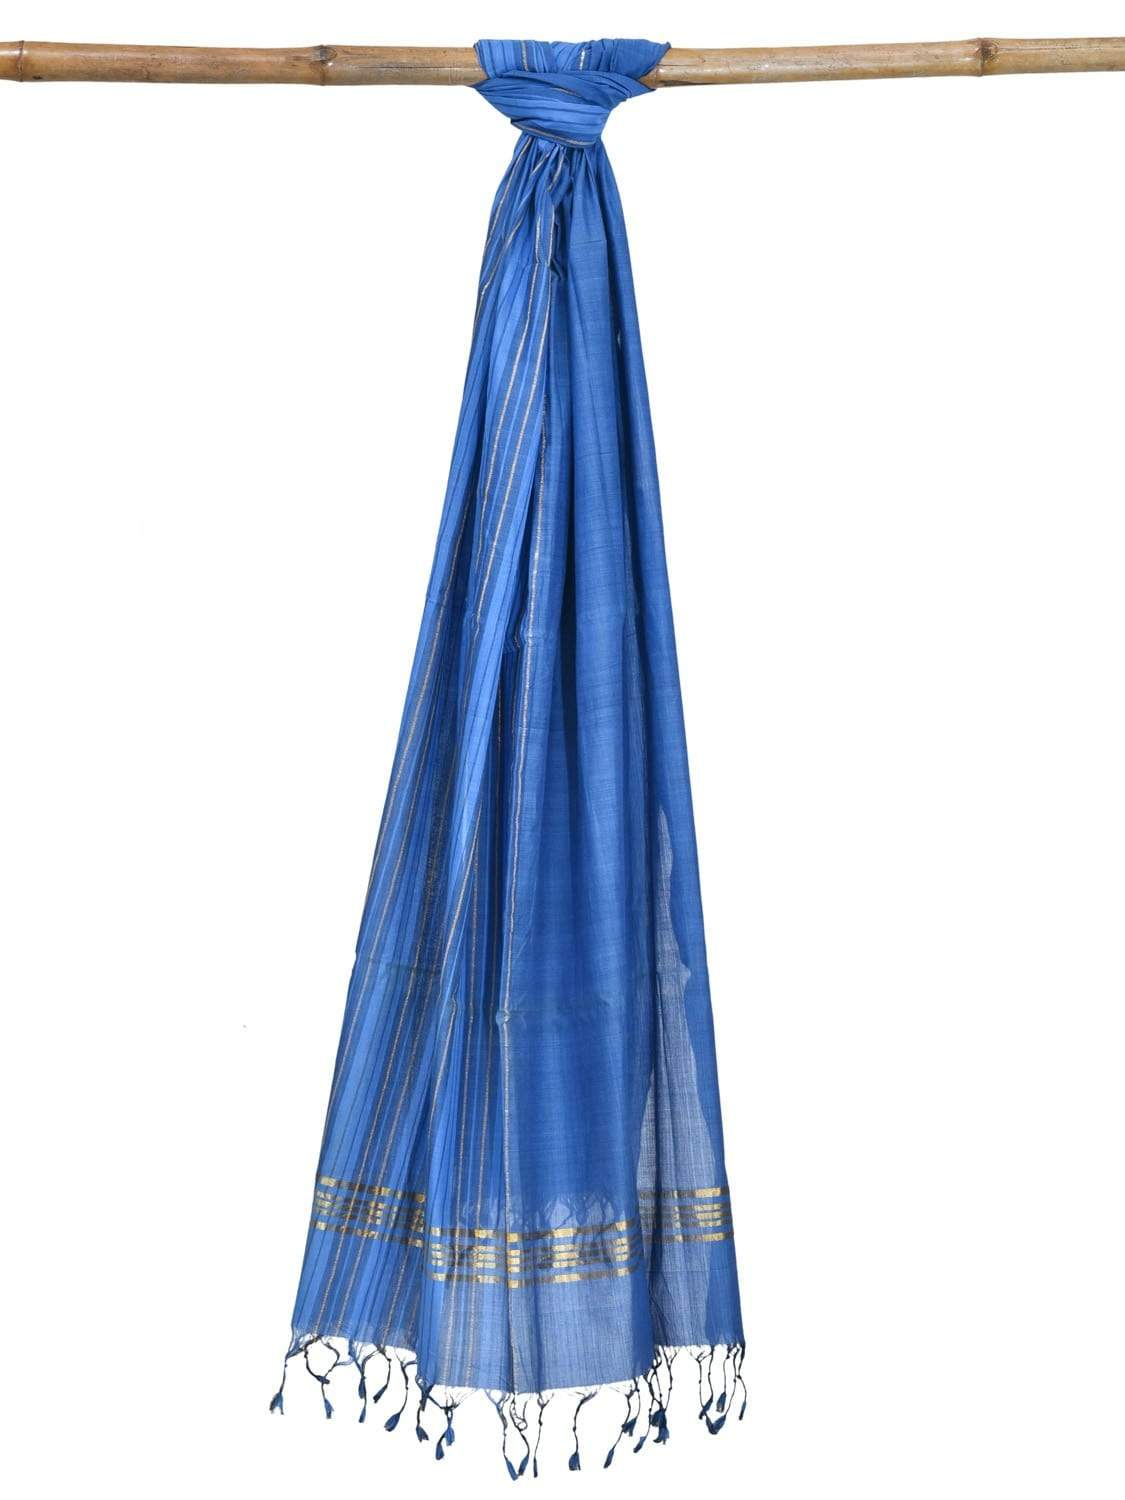 Blue Mangalgiri Cotton Handloom Dupatta with Strips Design ds1854